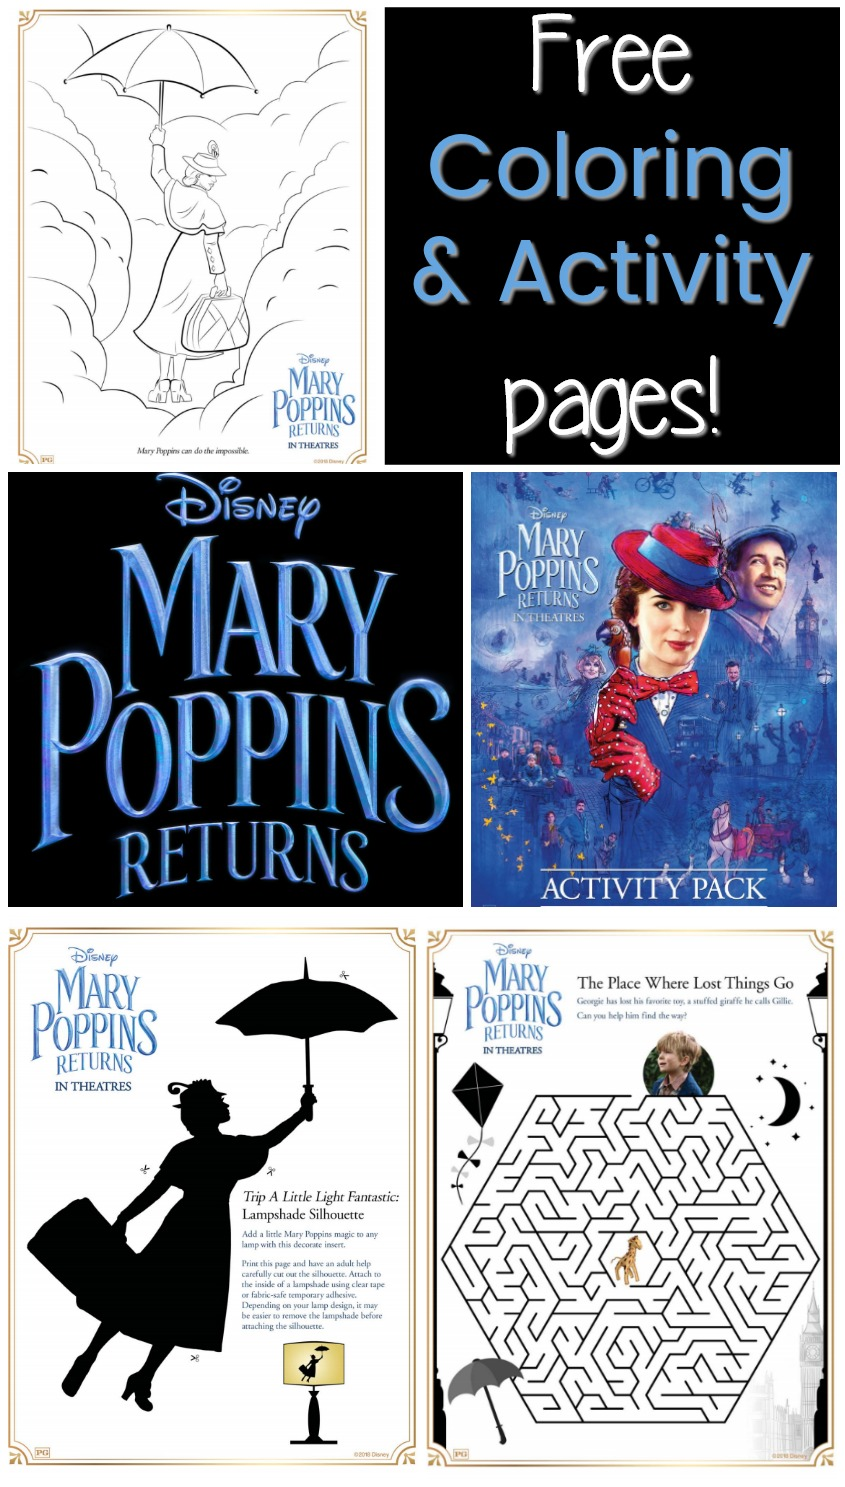 MARY POPPINS RETURNS in theaters NOW- FREE Coloring Pages too! #printables #MaryPoppinsReturns #disney